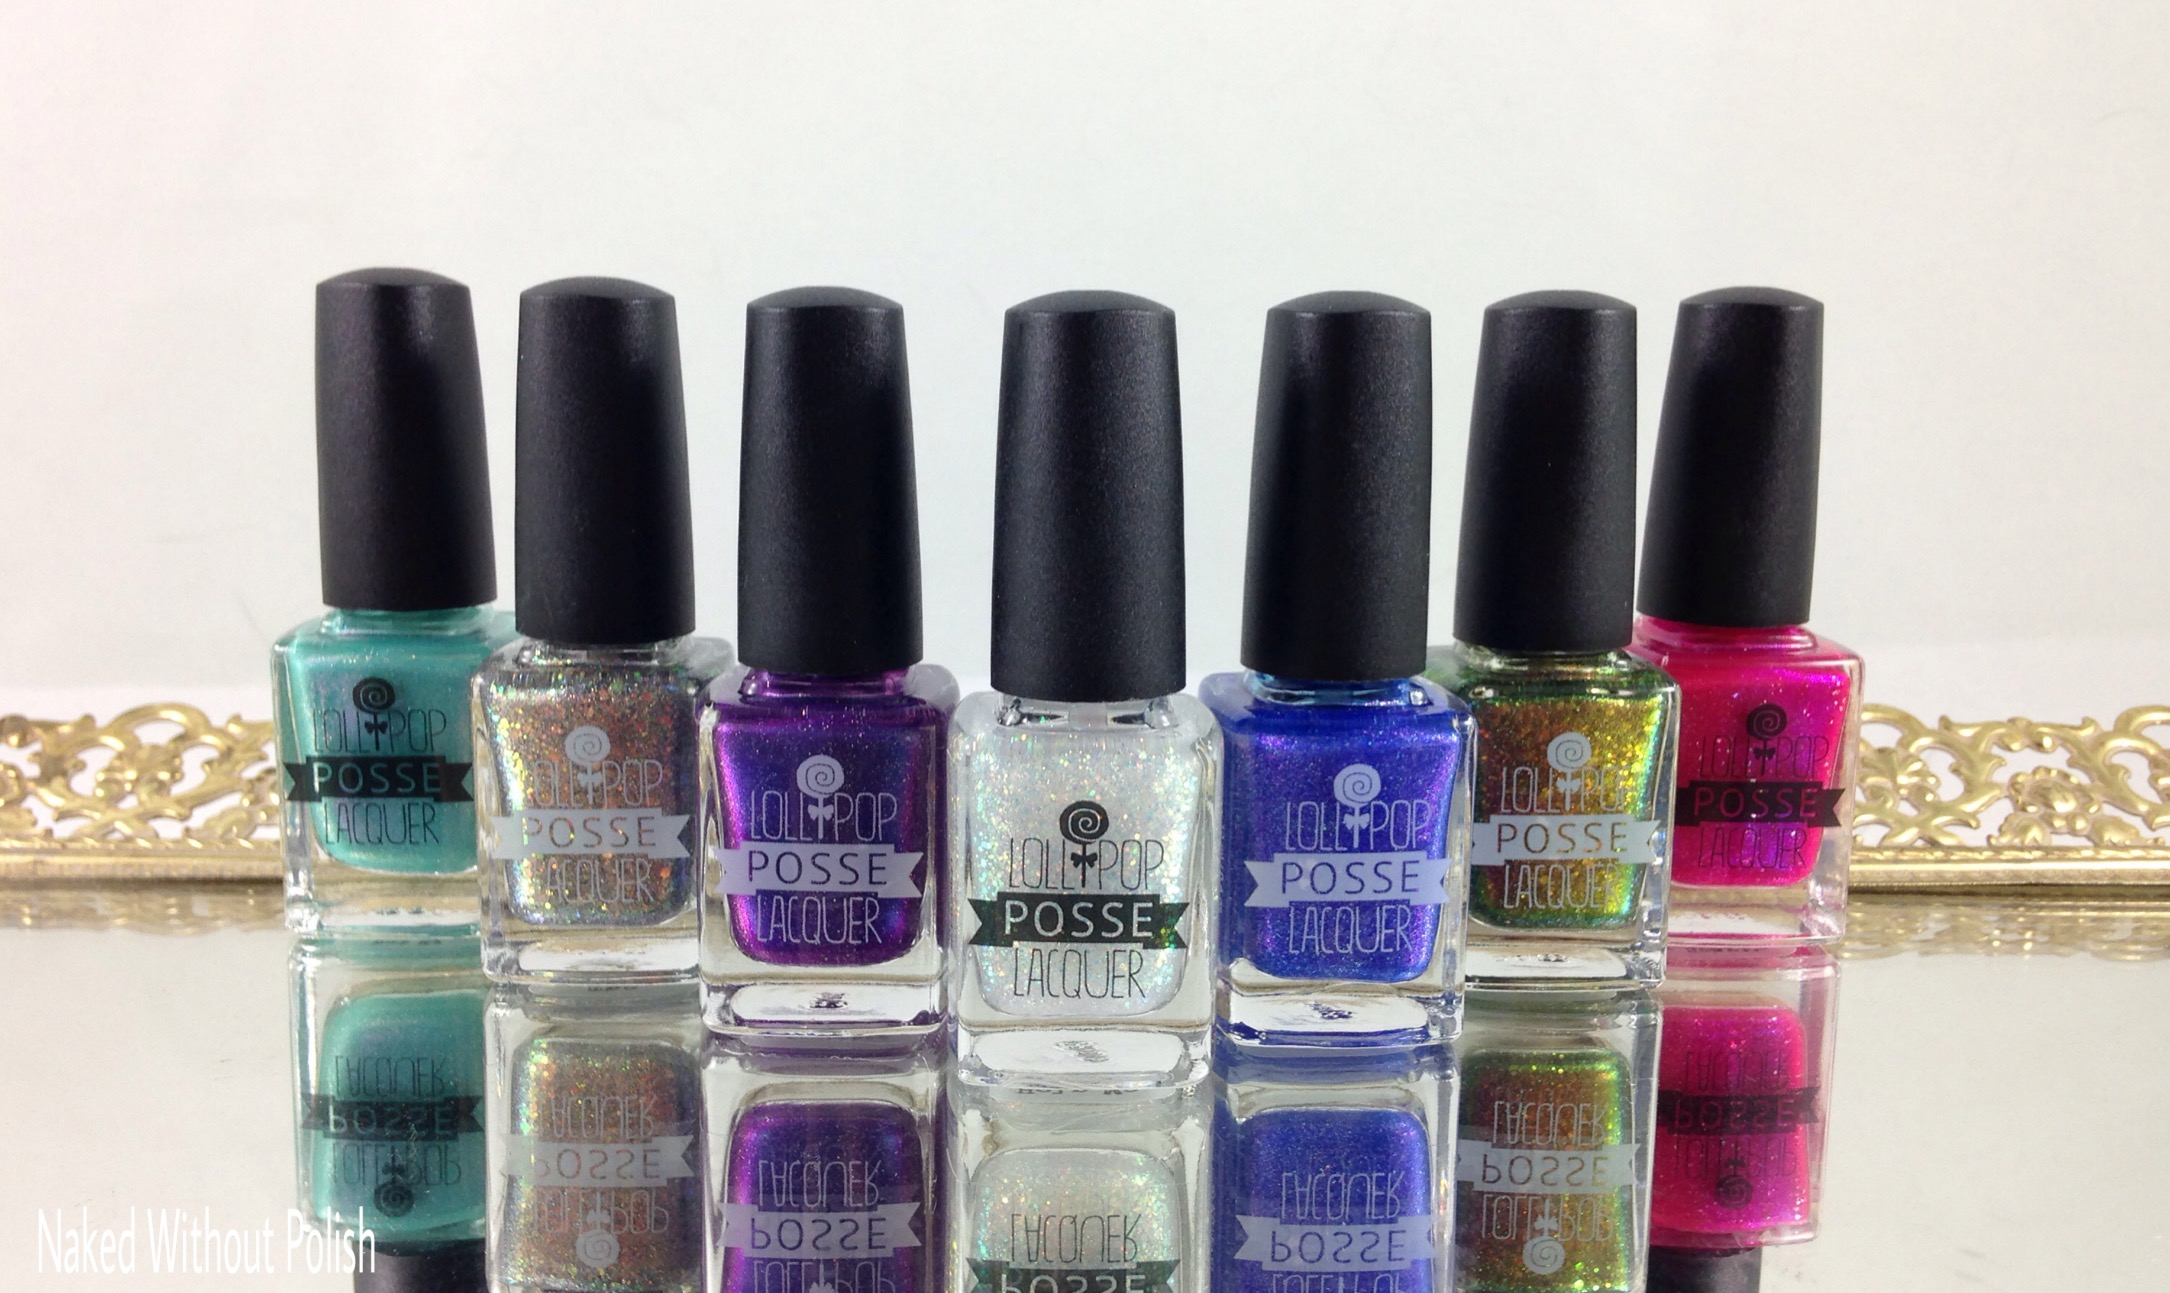 Lollipop-Posse-Lacquer-Summer-Mix-Tape-Collection-Overdrive-Edition-1